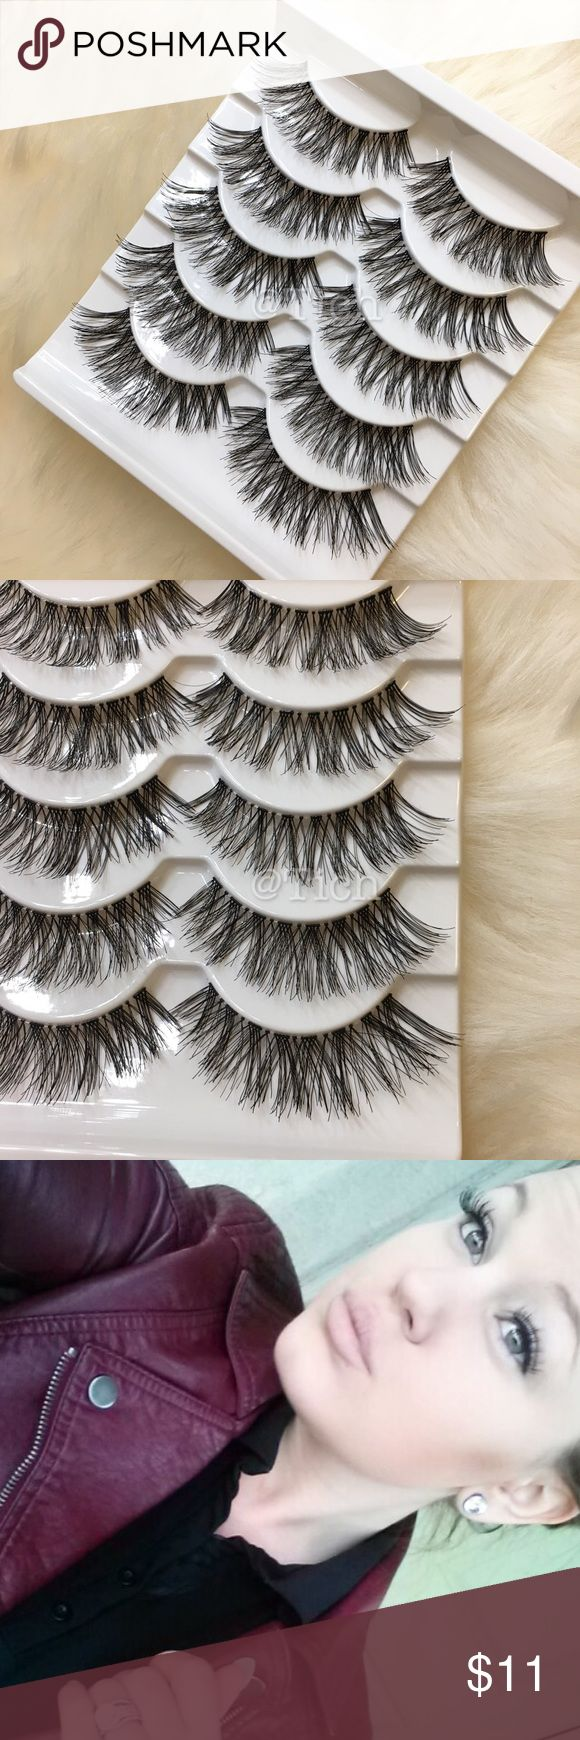 1 Pack Wispies Style Lashes New in box. 5 pairs per pack. Longer than the Demi Style Lashes. Lashes are full and soft. Band is thin and clear for easy application.    Bundle and save!    Any questions please ask!    Wispy Ardell false eyelashes Makeup False Eyelashes